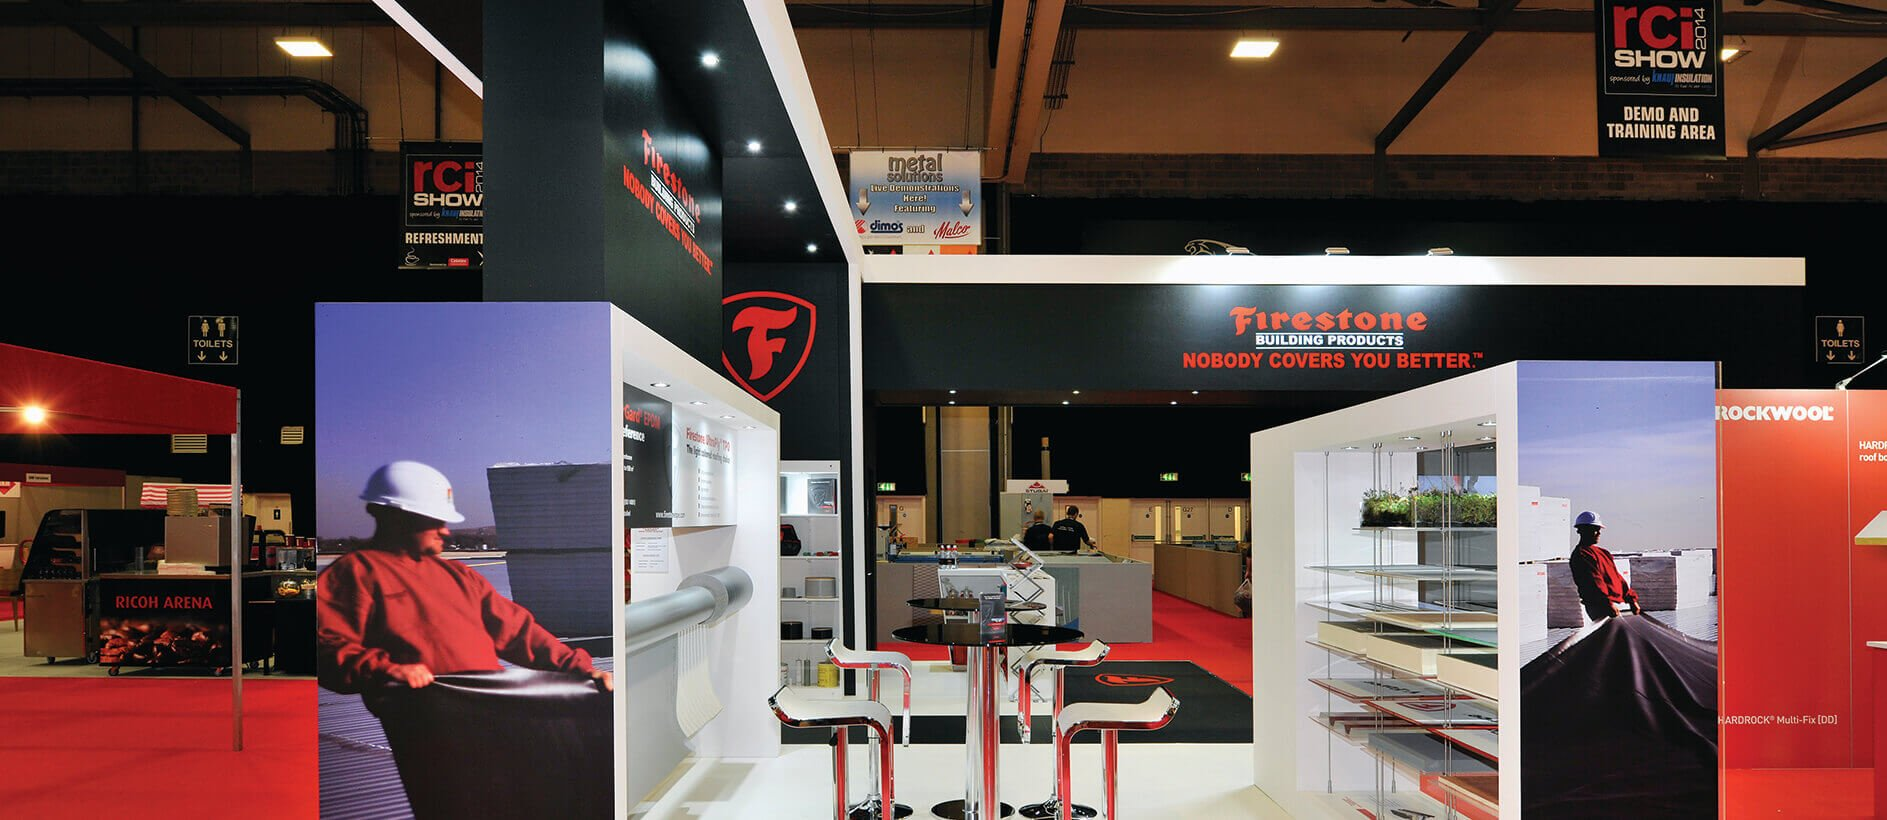 Quality exhibition graphics for Firestone